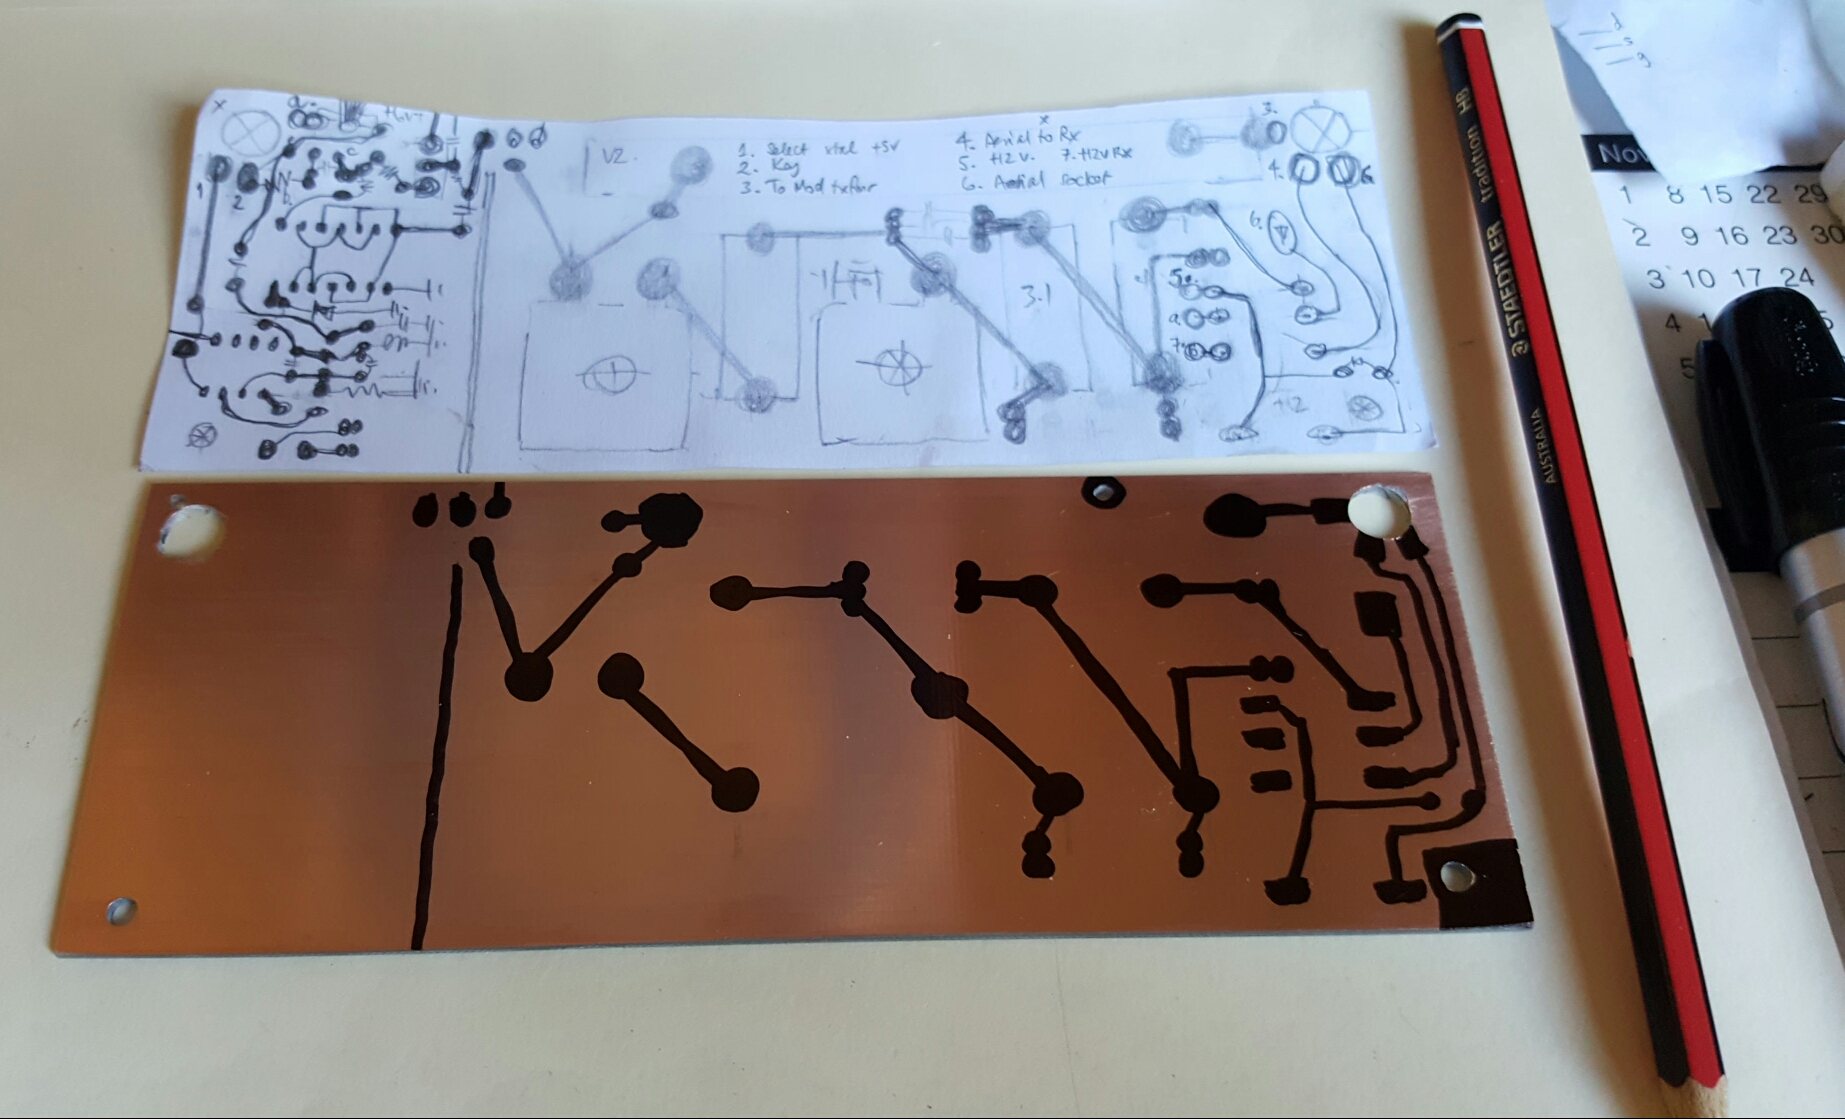 Artisan Printed Circuit Boards Vk3hn Board Artwork Stripboard And Breadboard Layout Have Your Personal Choice Of 160 Meters Am Or 40 Cw Running Quietly In The Background For Ambiance Youll Concentrate Better